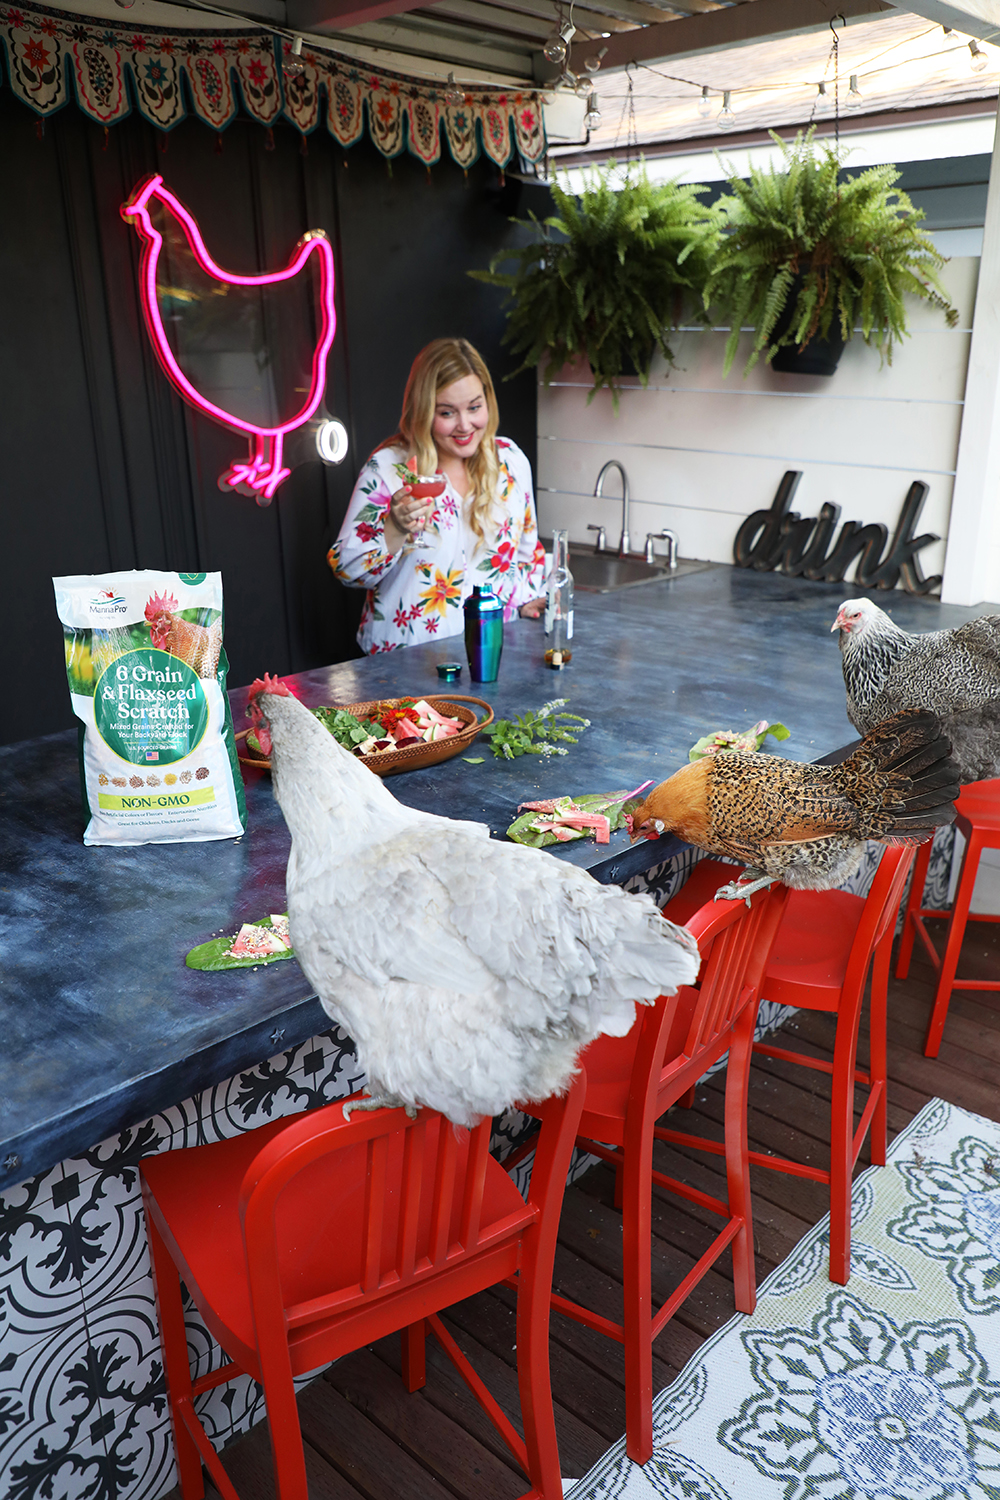 Happy hour treats in the Chicken Bar with Manna Pro poultry | drinkingwithchickens.com #sponsored